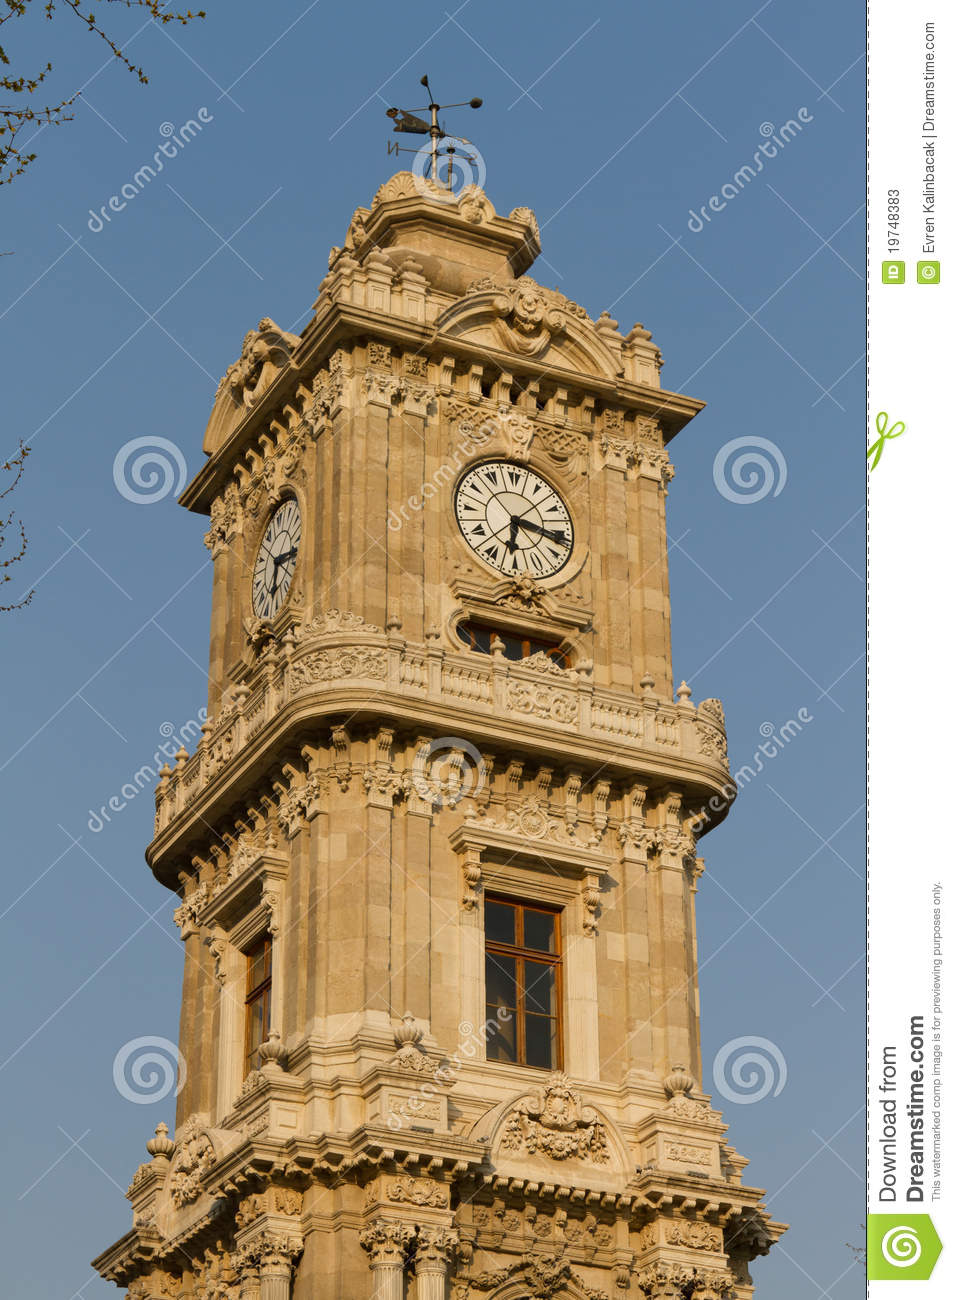 Dolmabahce Clock Tower Stock Photos - Image: 19748383